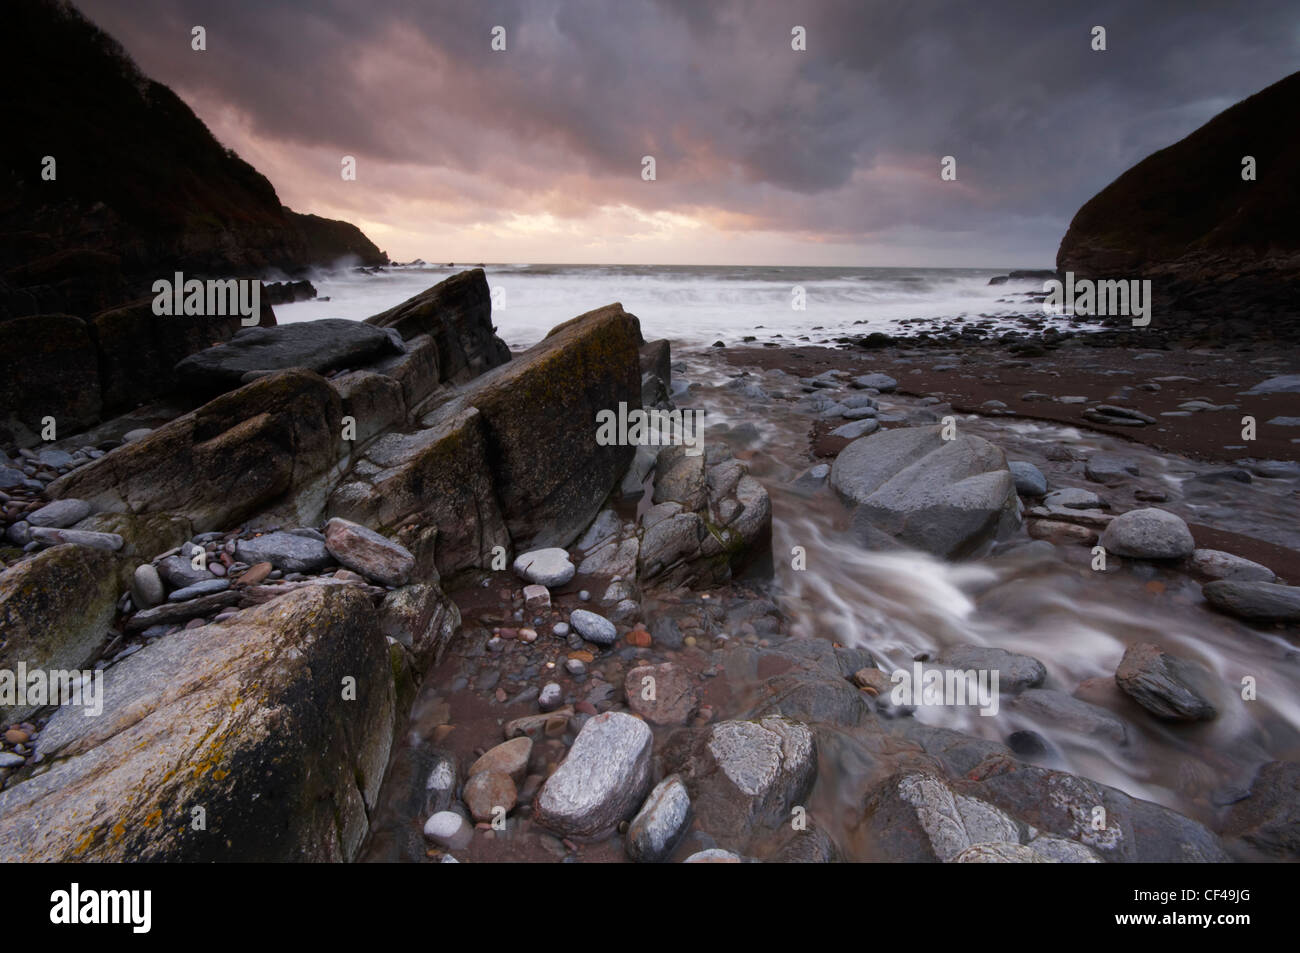 A stormy dusk at Lee Bay on the North Devon coast. - Stock Image